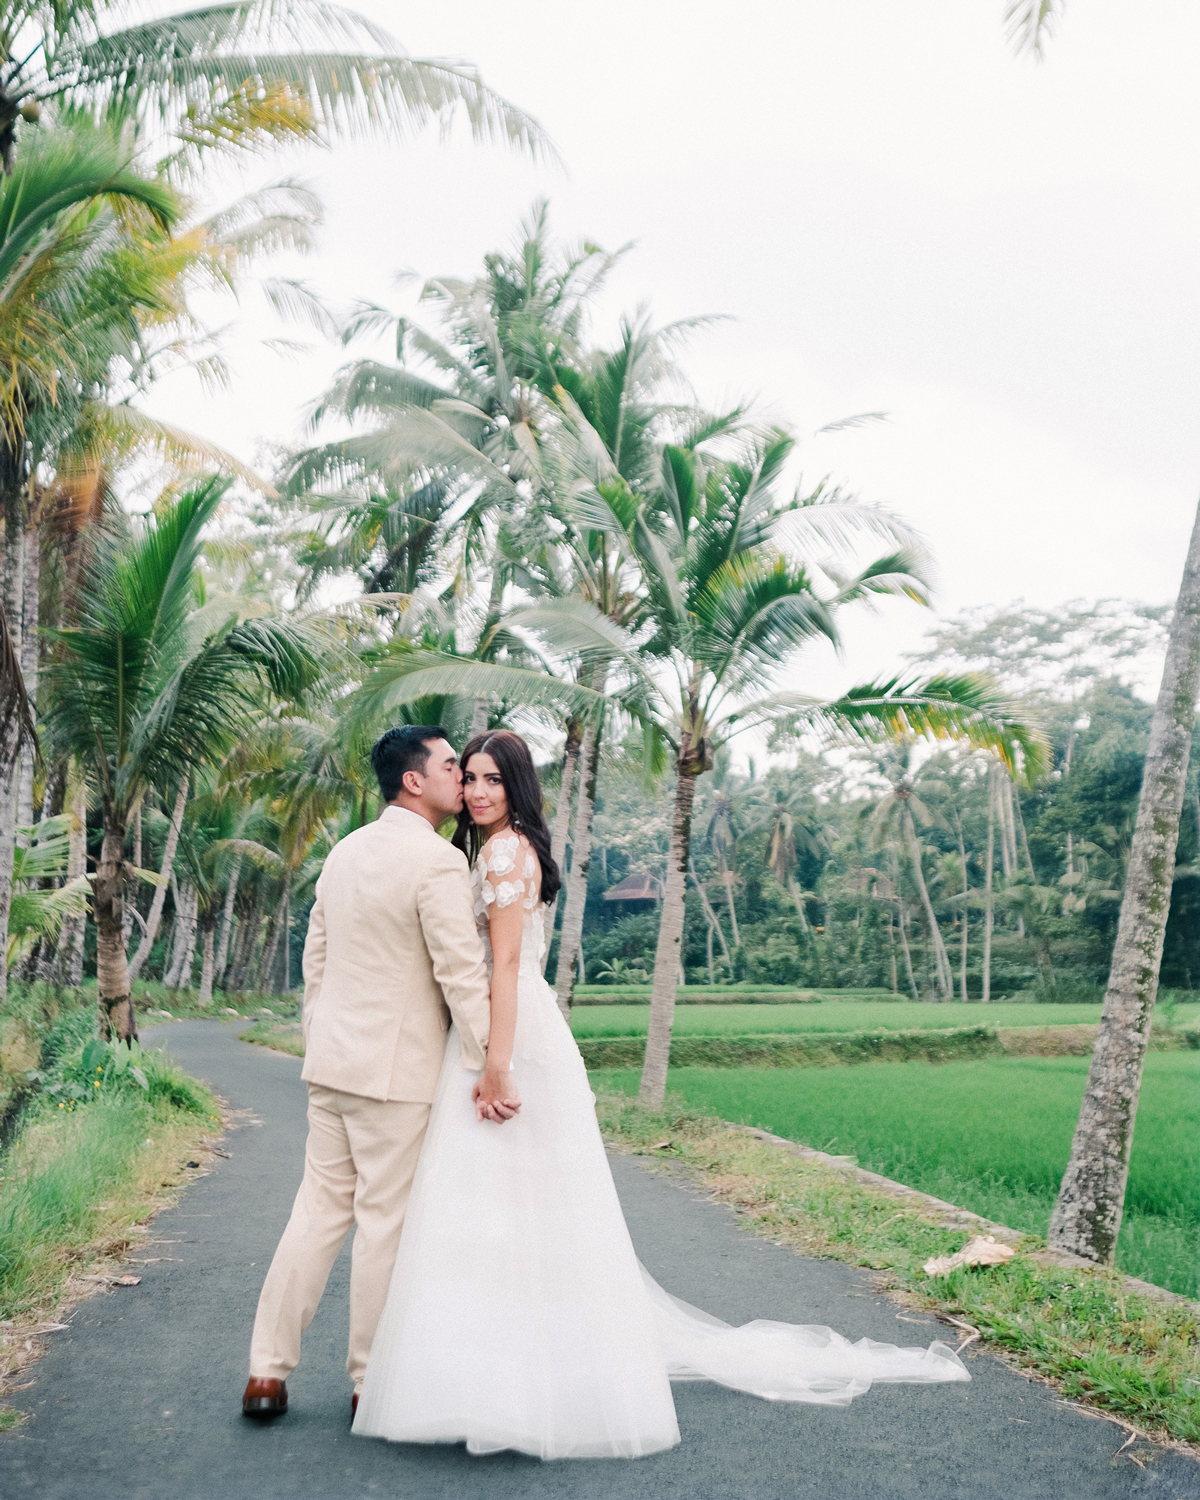 bride and groom holding hands walking along path of palm trees